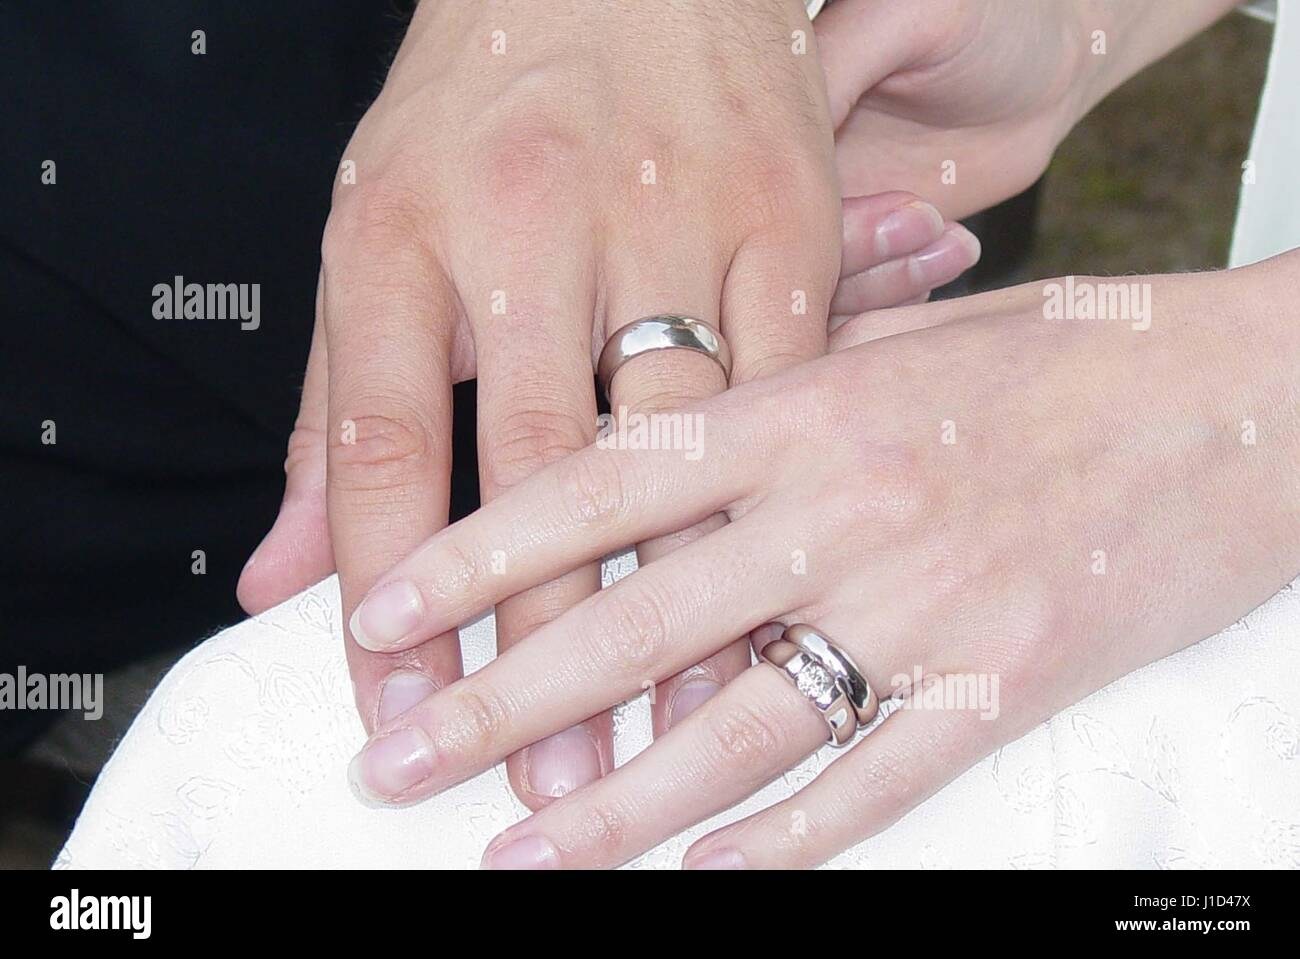 Husband And Wife Hold Hands Rings Stock Photos & Husband And Wife ...